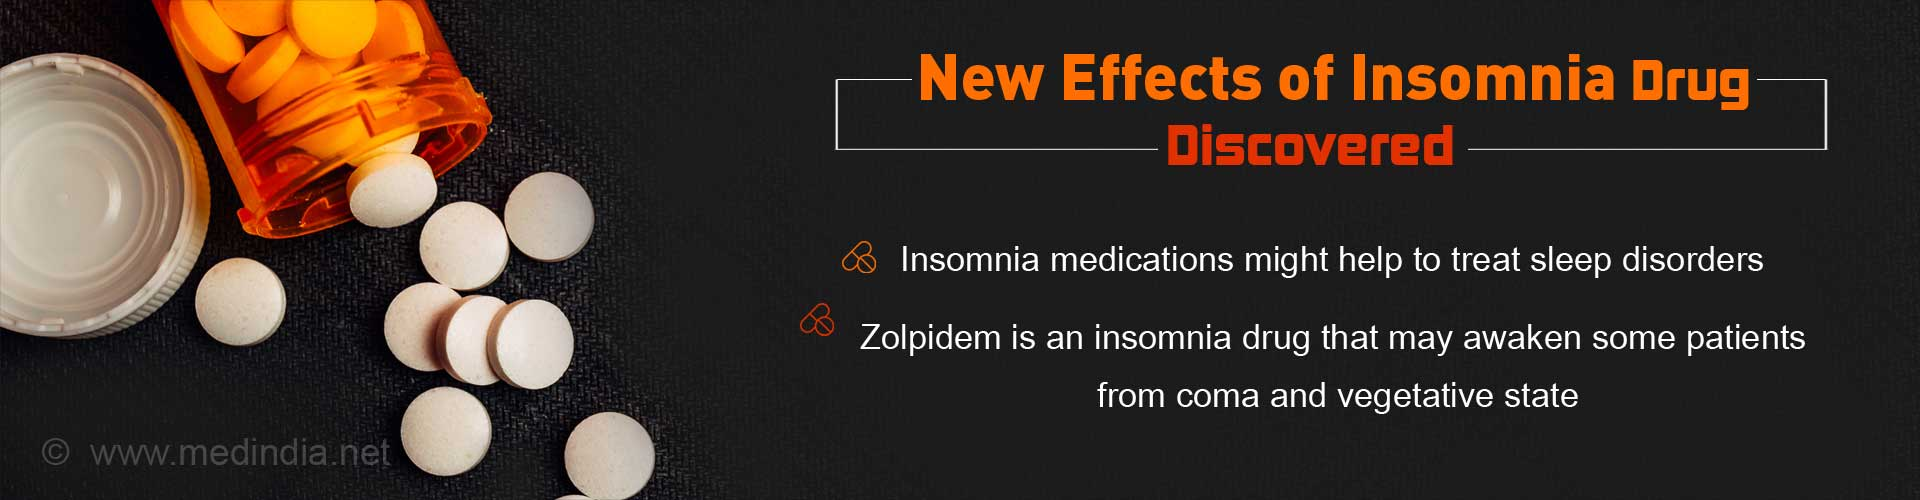 New Effects of Insomnia Drug Discovered